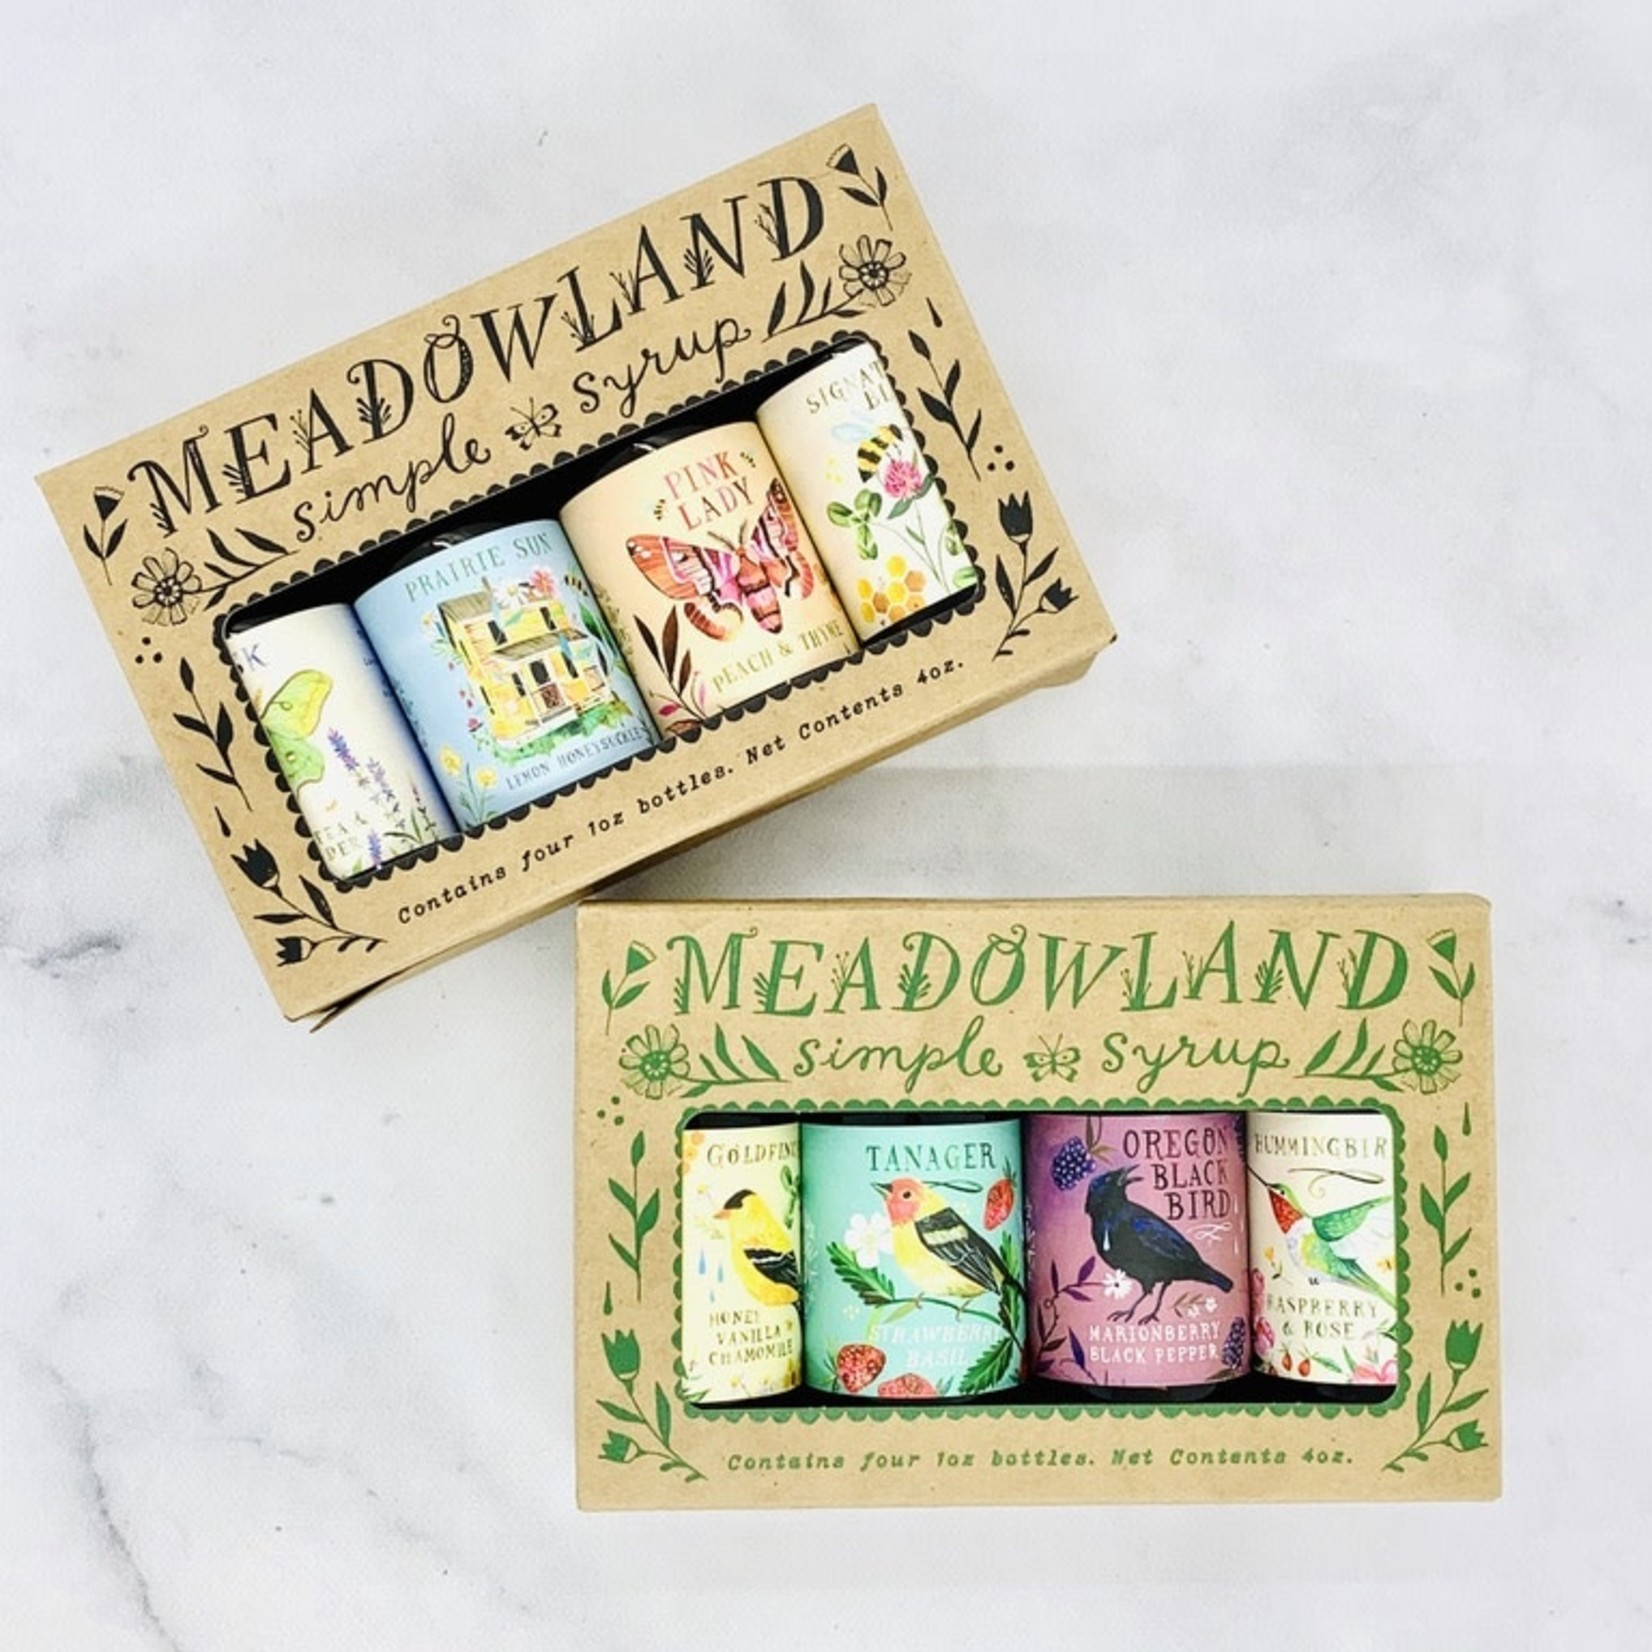 Meadowland Syrup Meadowland Simple Syrup Collection: